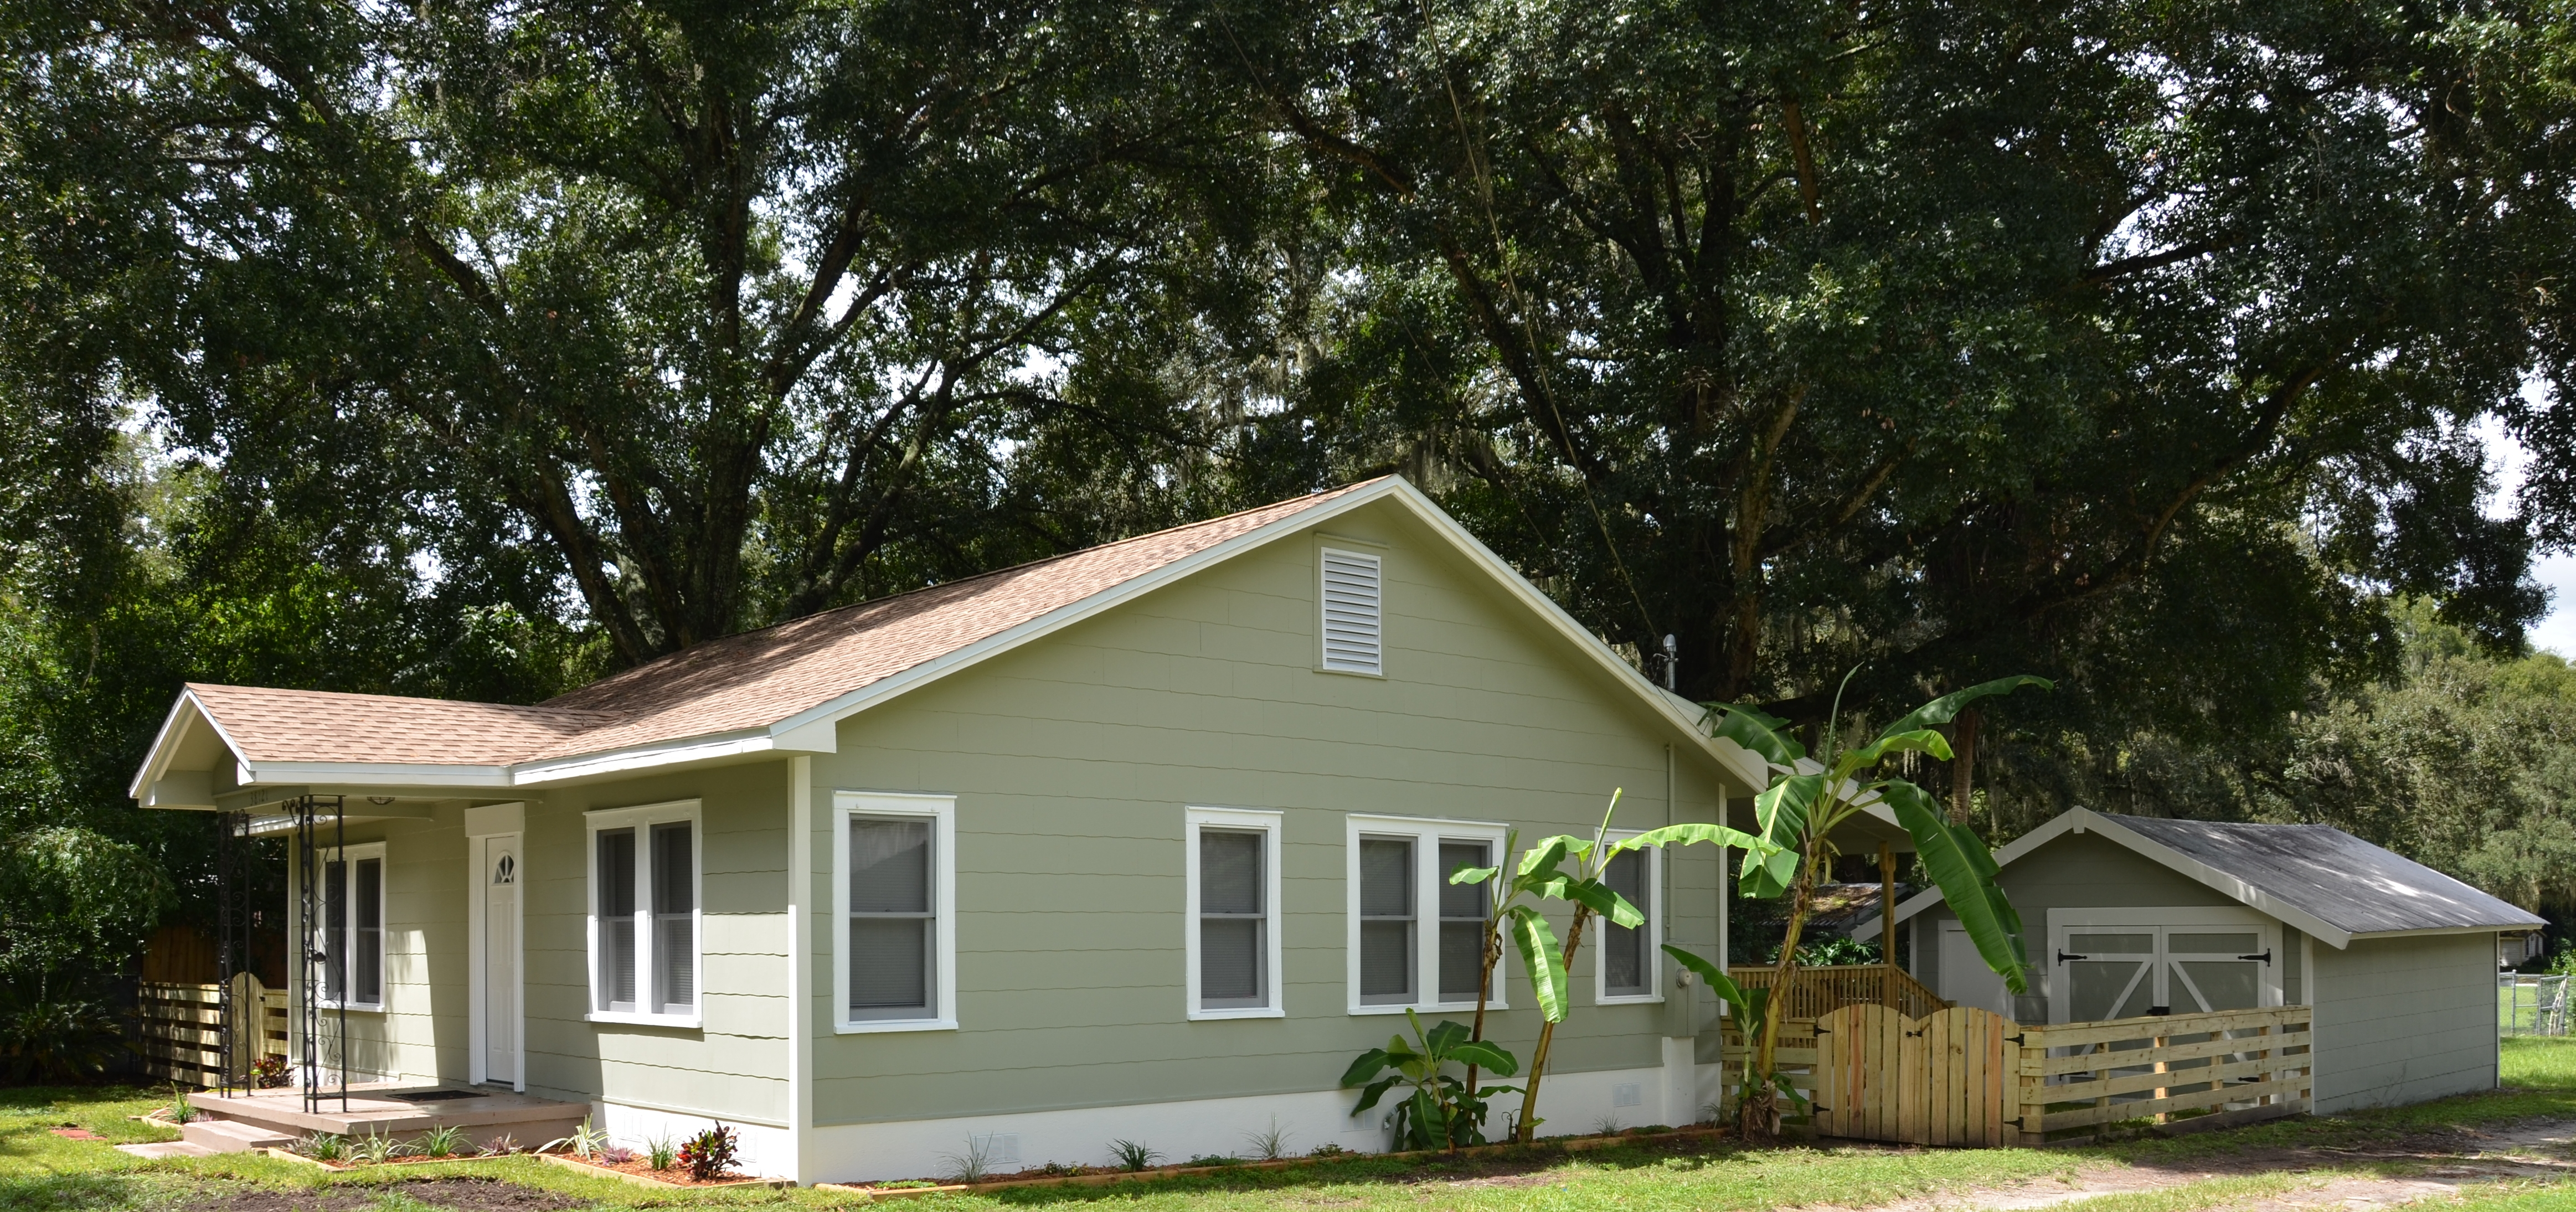 38121-6th-Avenue-Zephyrhills-FL-33542